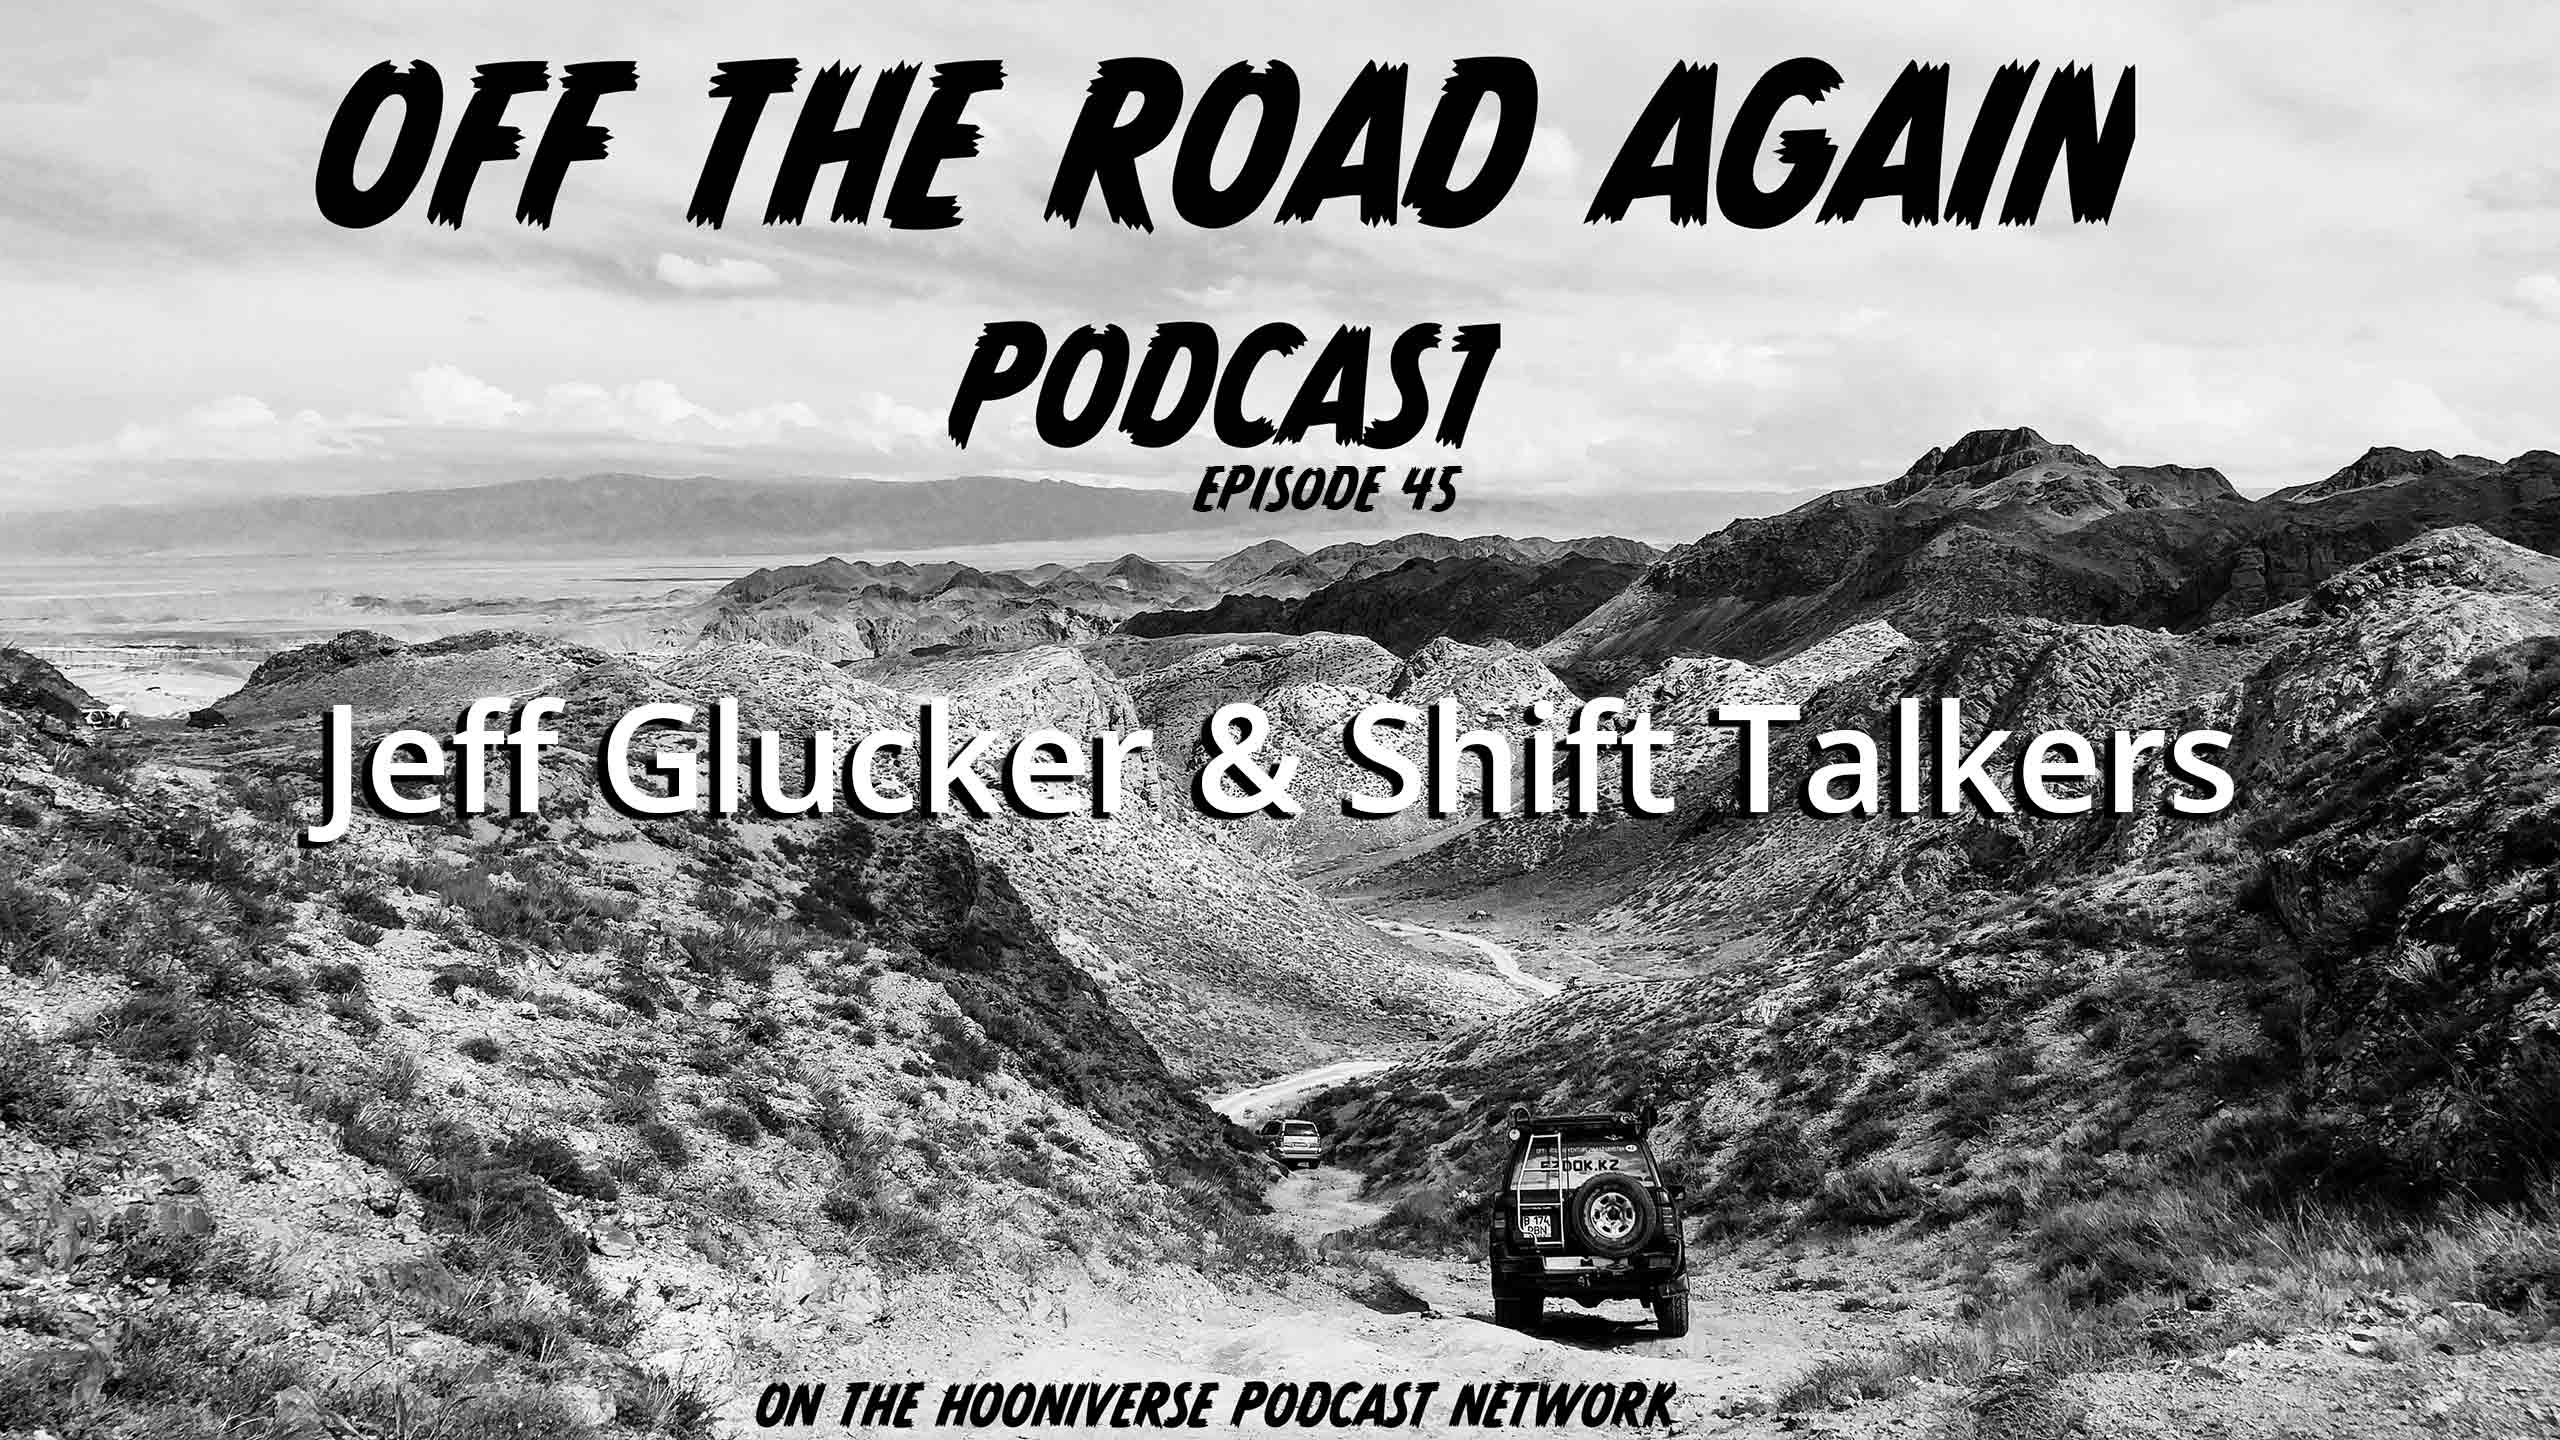 Jeff-Glucker-Shift-Talkers-Off-The-Road-Again-Podcast-Episode-45